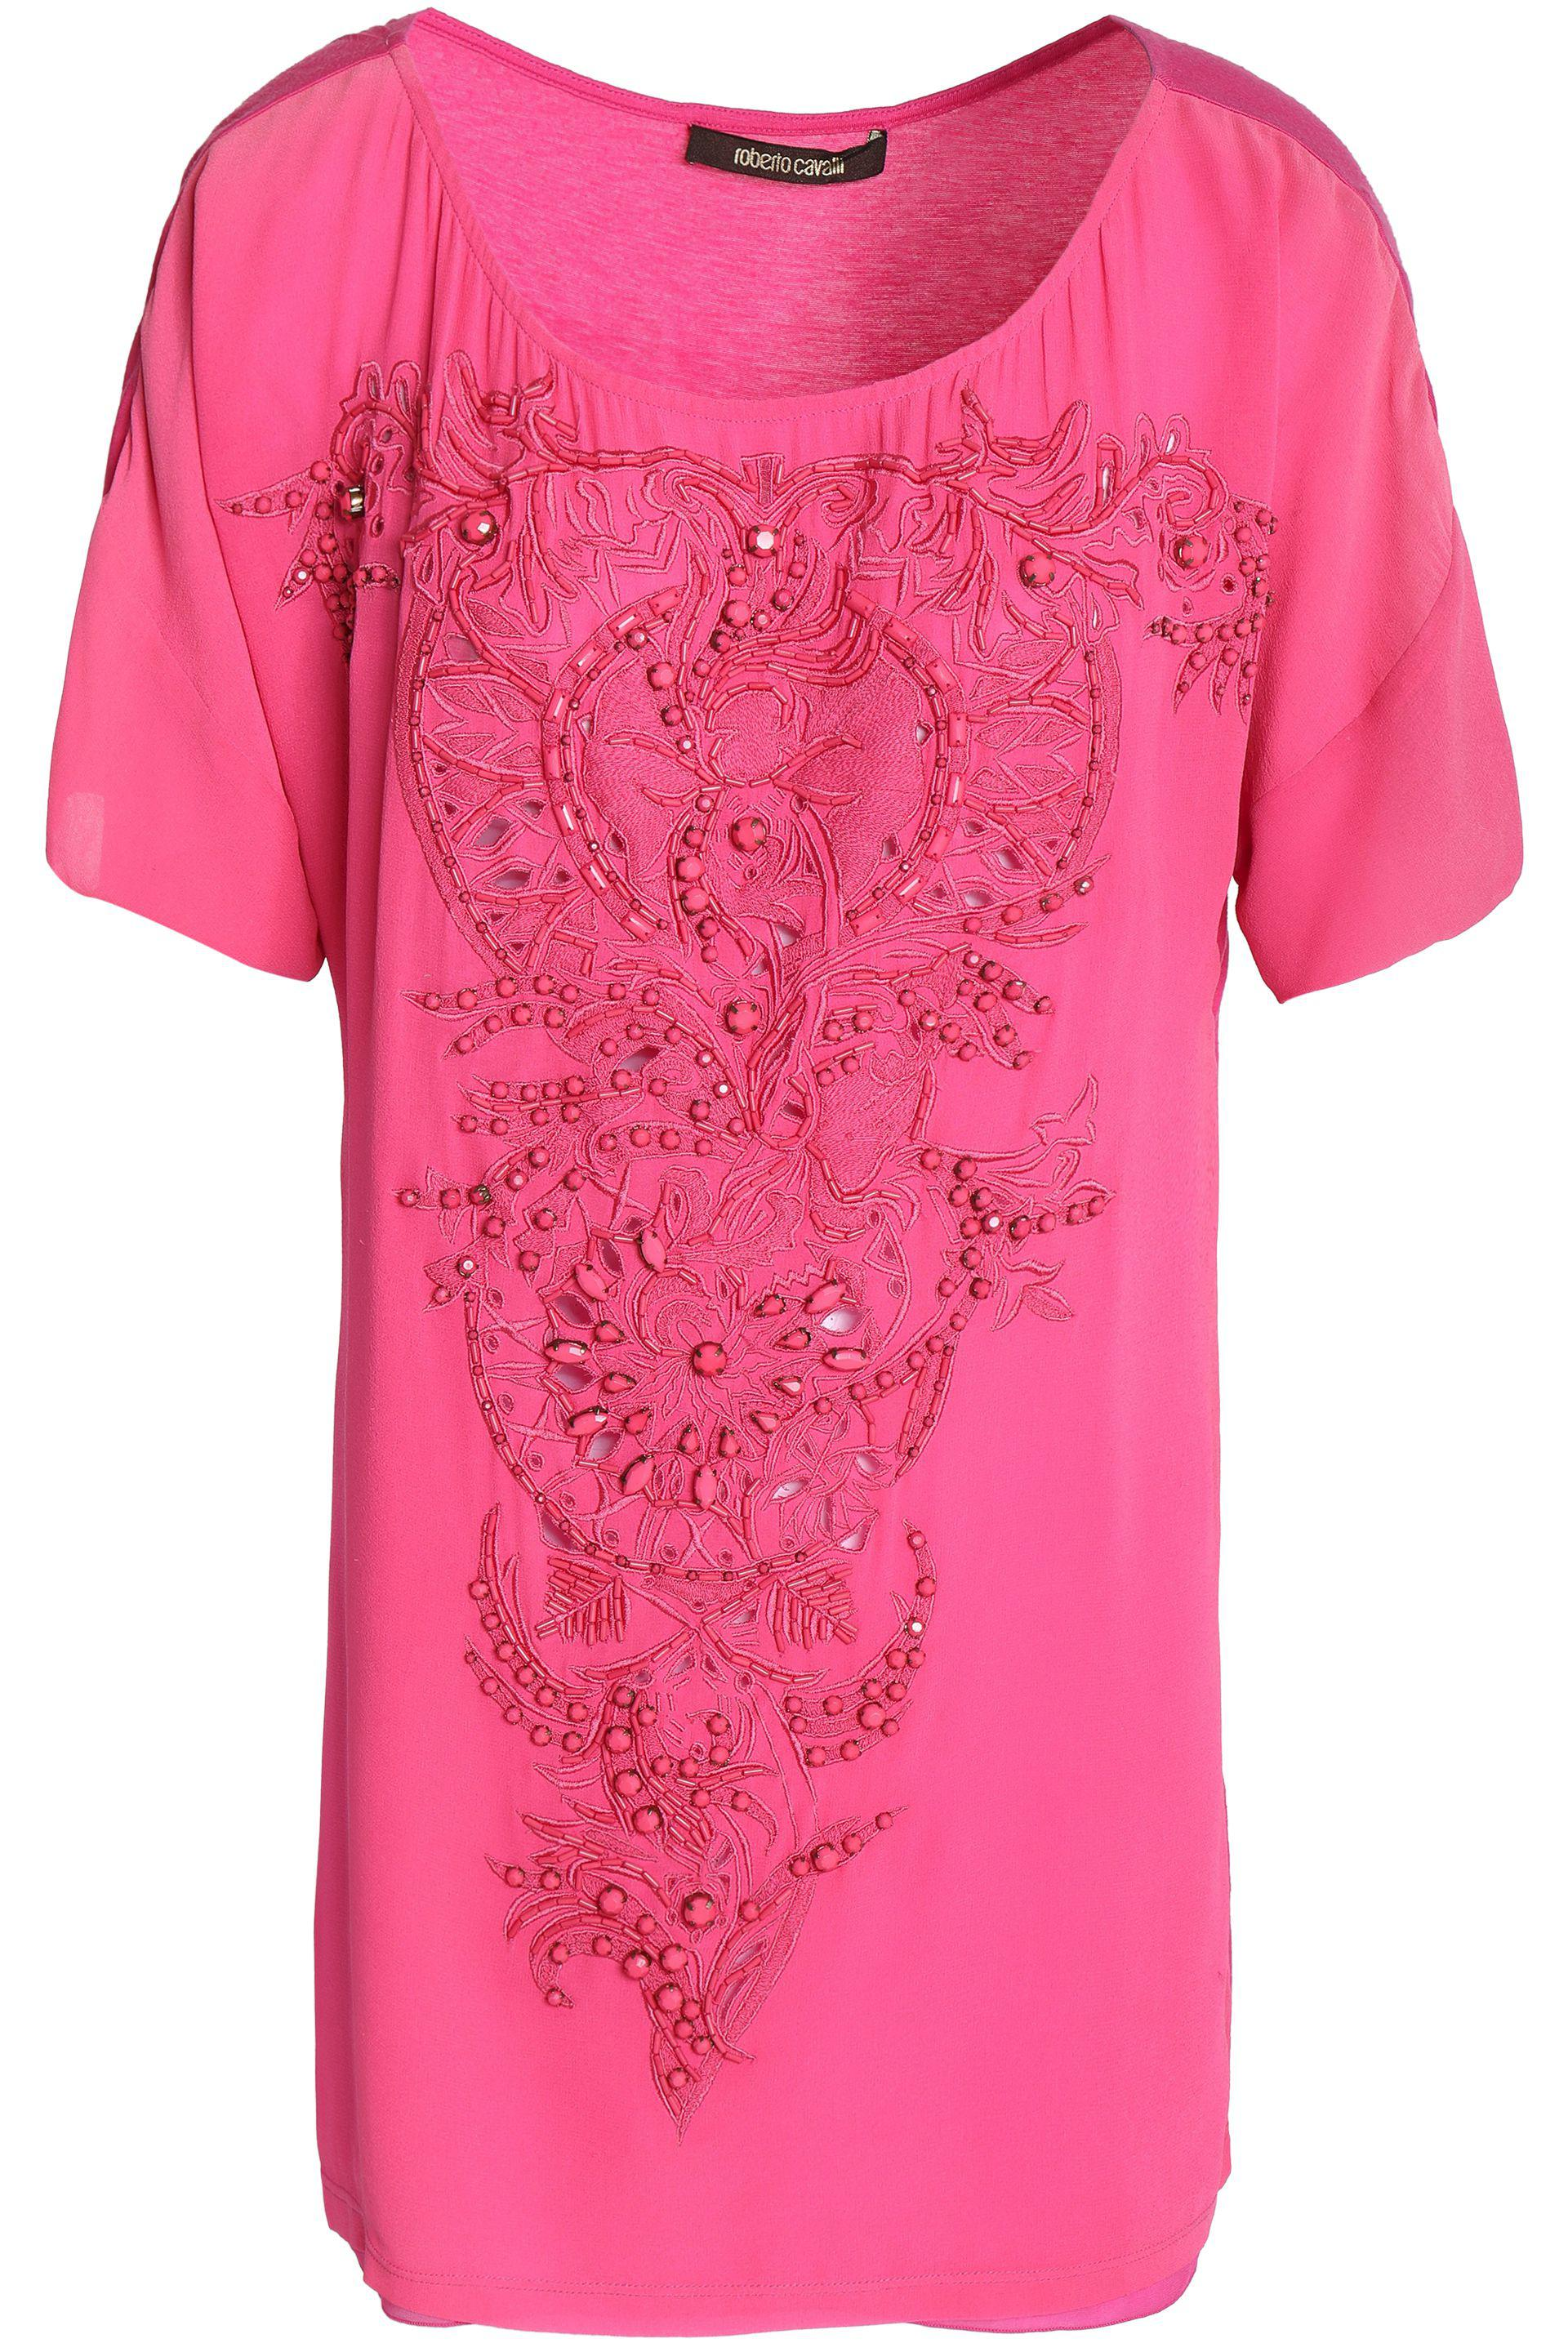 Roberto Cavalli. Women's Pink Embellished Embroidered Silk Top